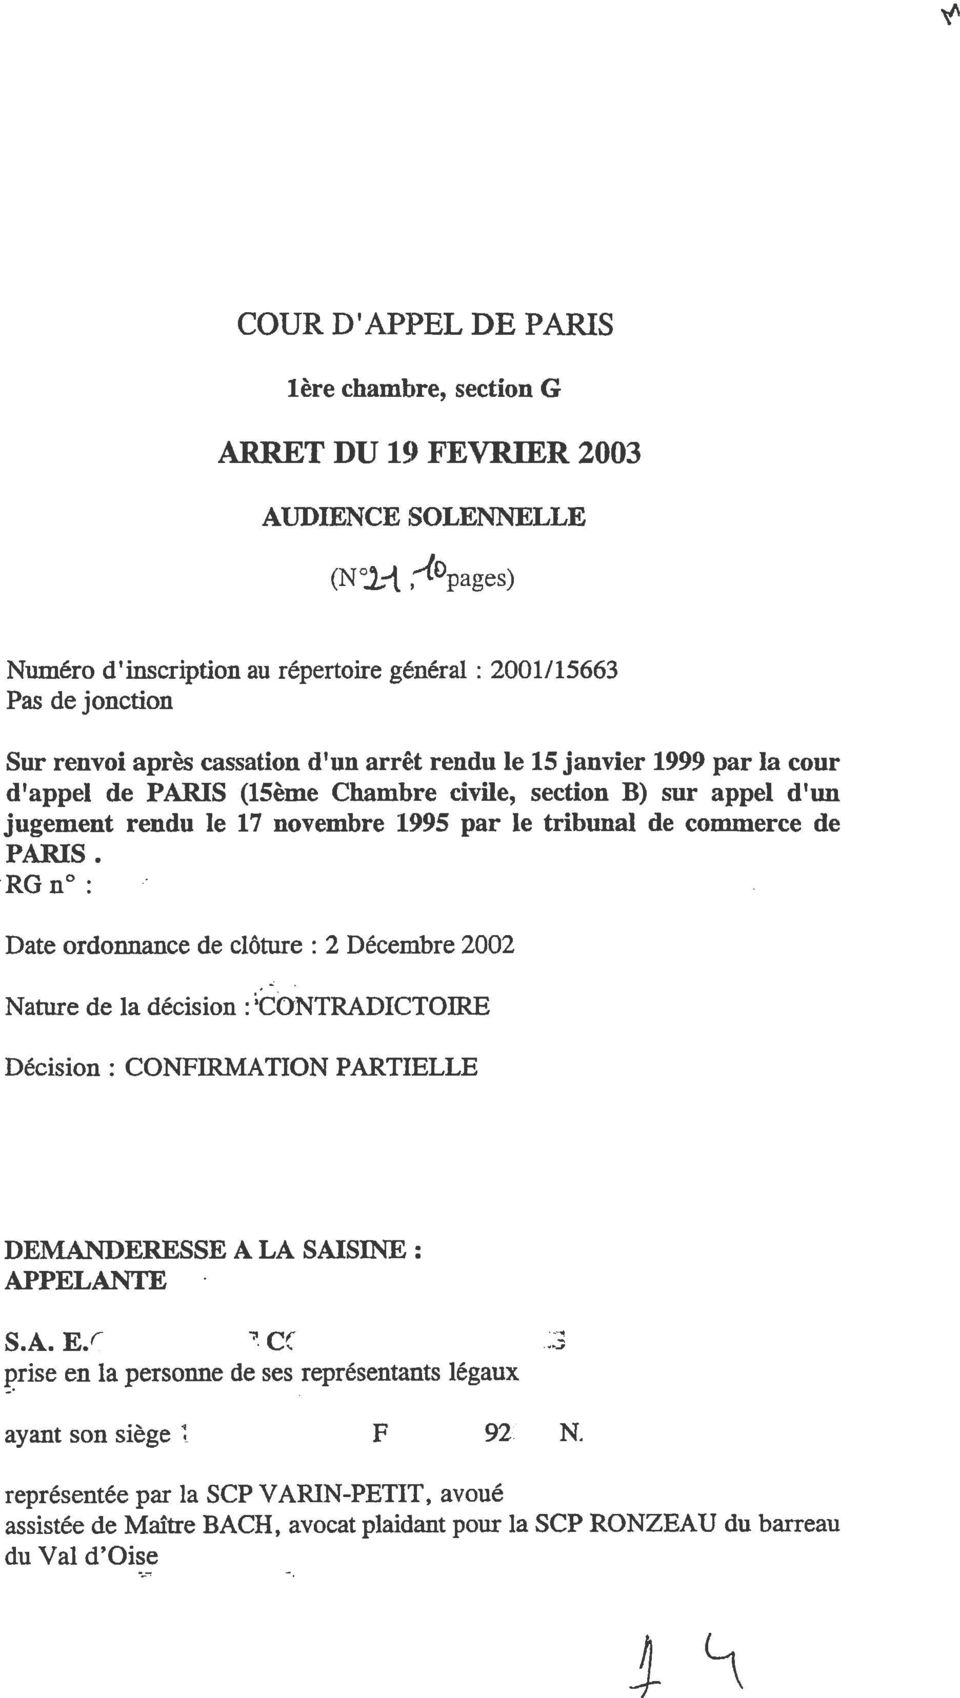 PARIS (15ème Chamb,re civile, section B) sur appel d'un jugement rendu le 17 novembre 1:995 par le tribunal de commerce de PARIS.